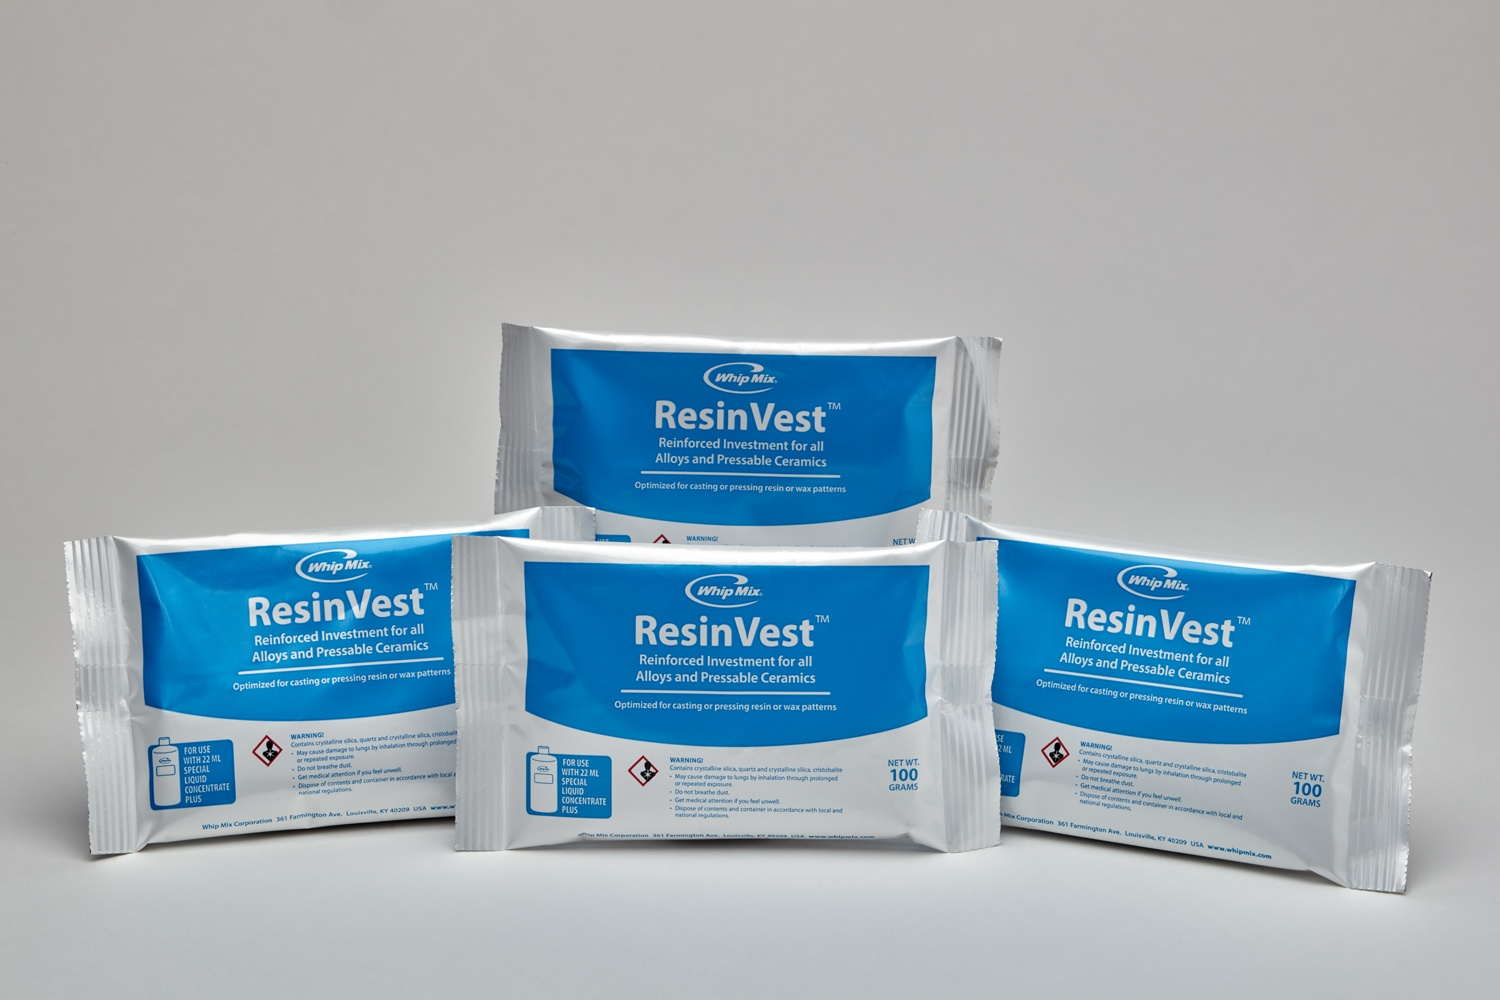 ResinVest Tips for Optimal Performance